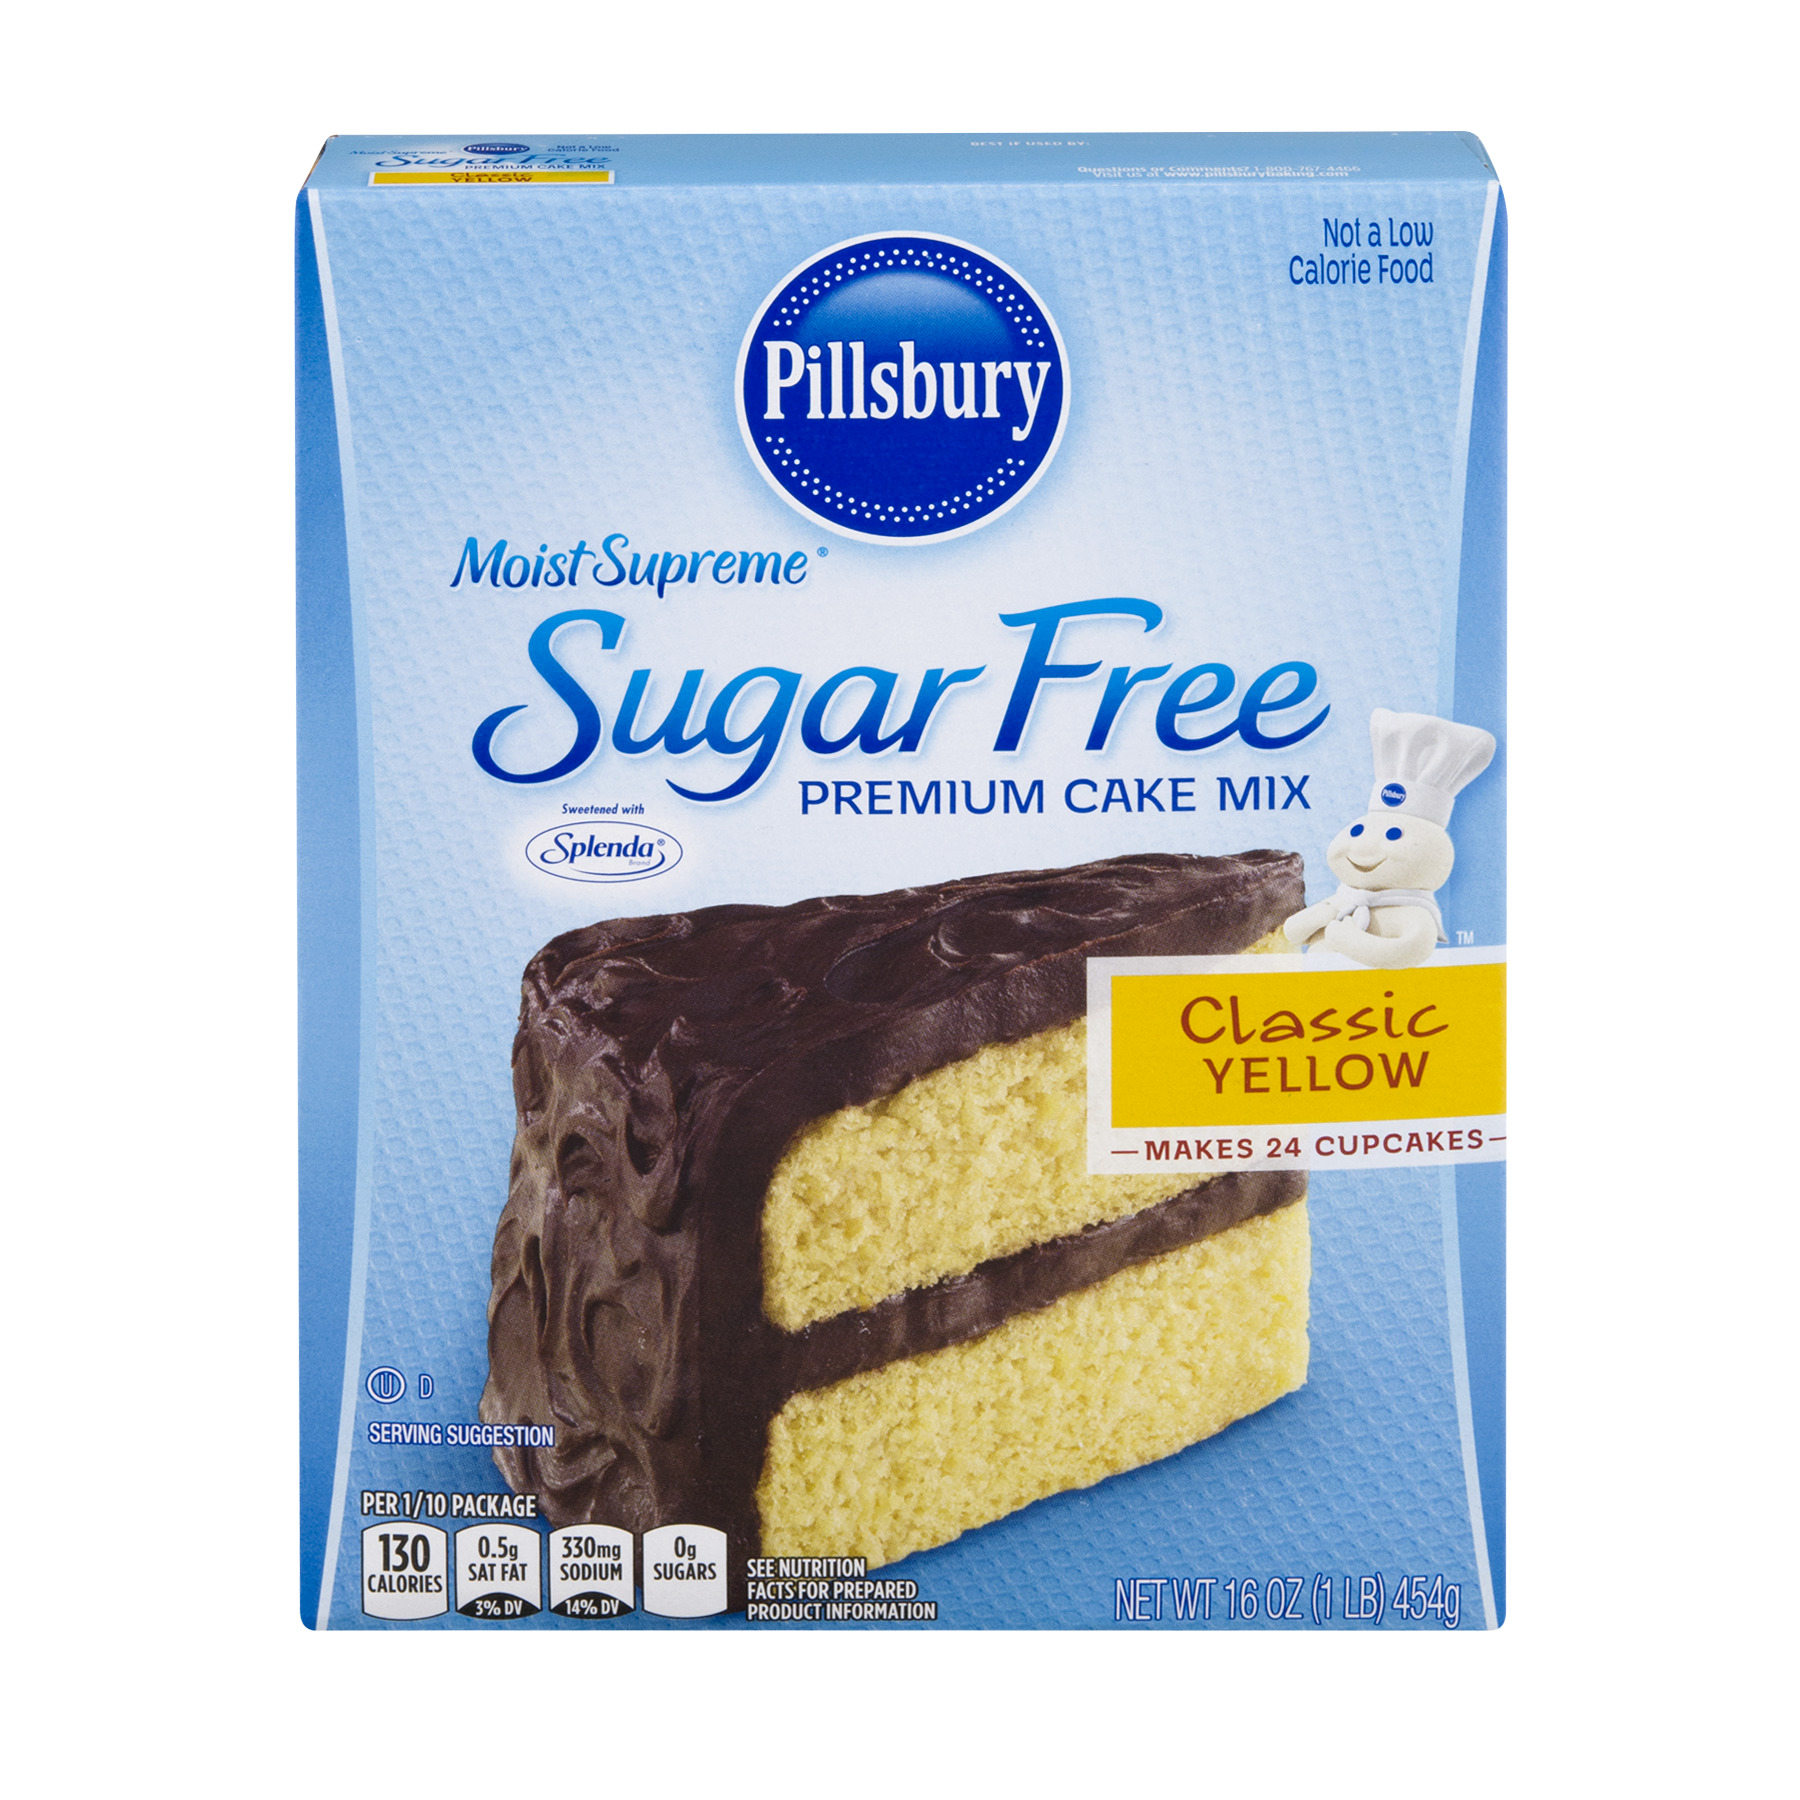 Pillsbury Moist Supreme Sugar Free Premium Cake Mix Classic Yellow, 16.0 OZ